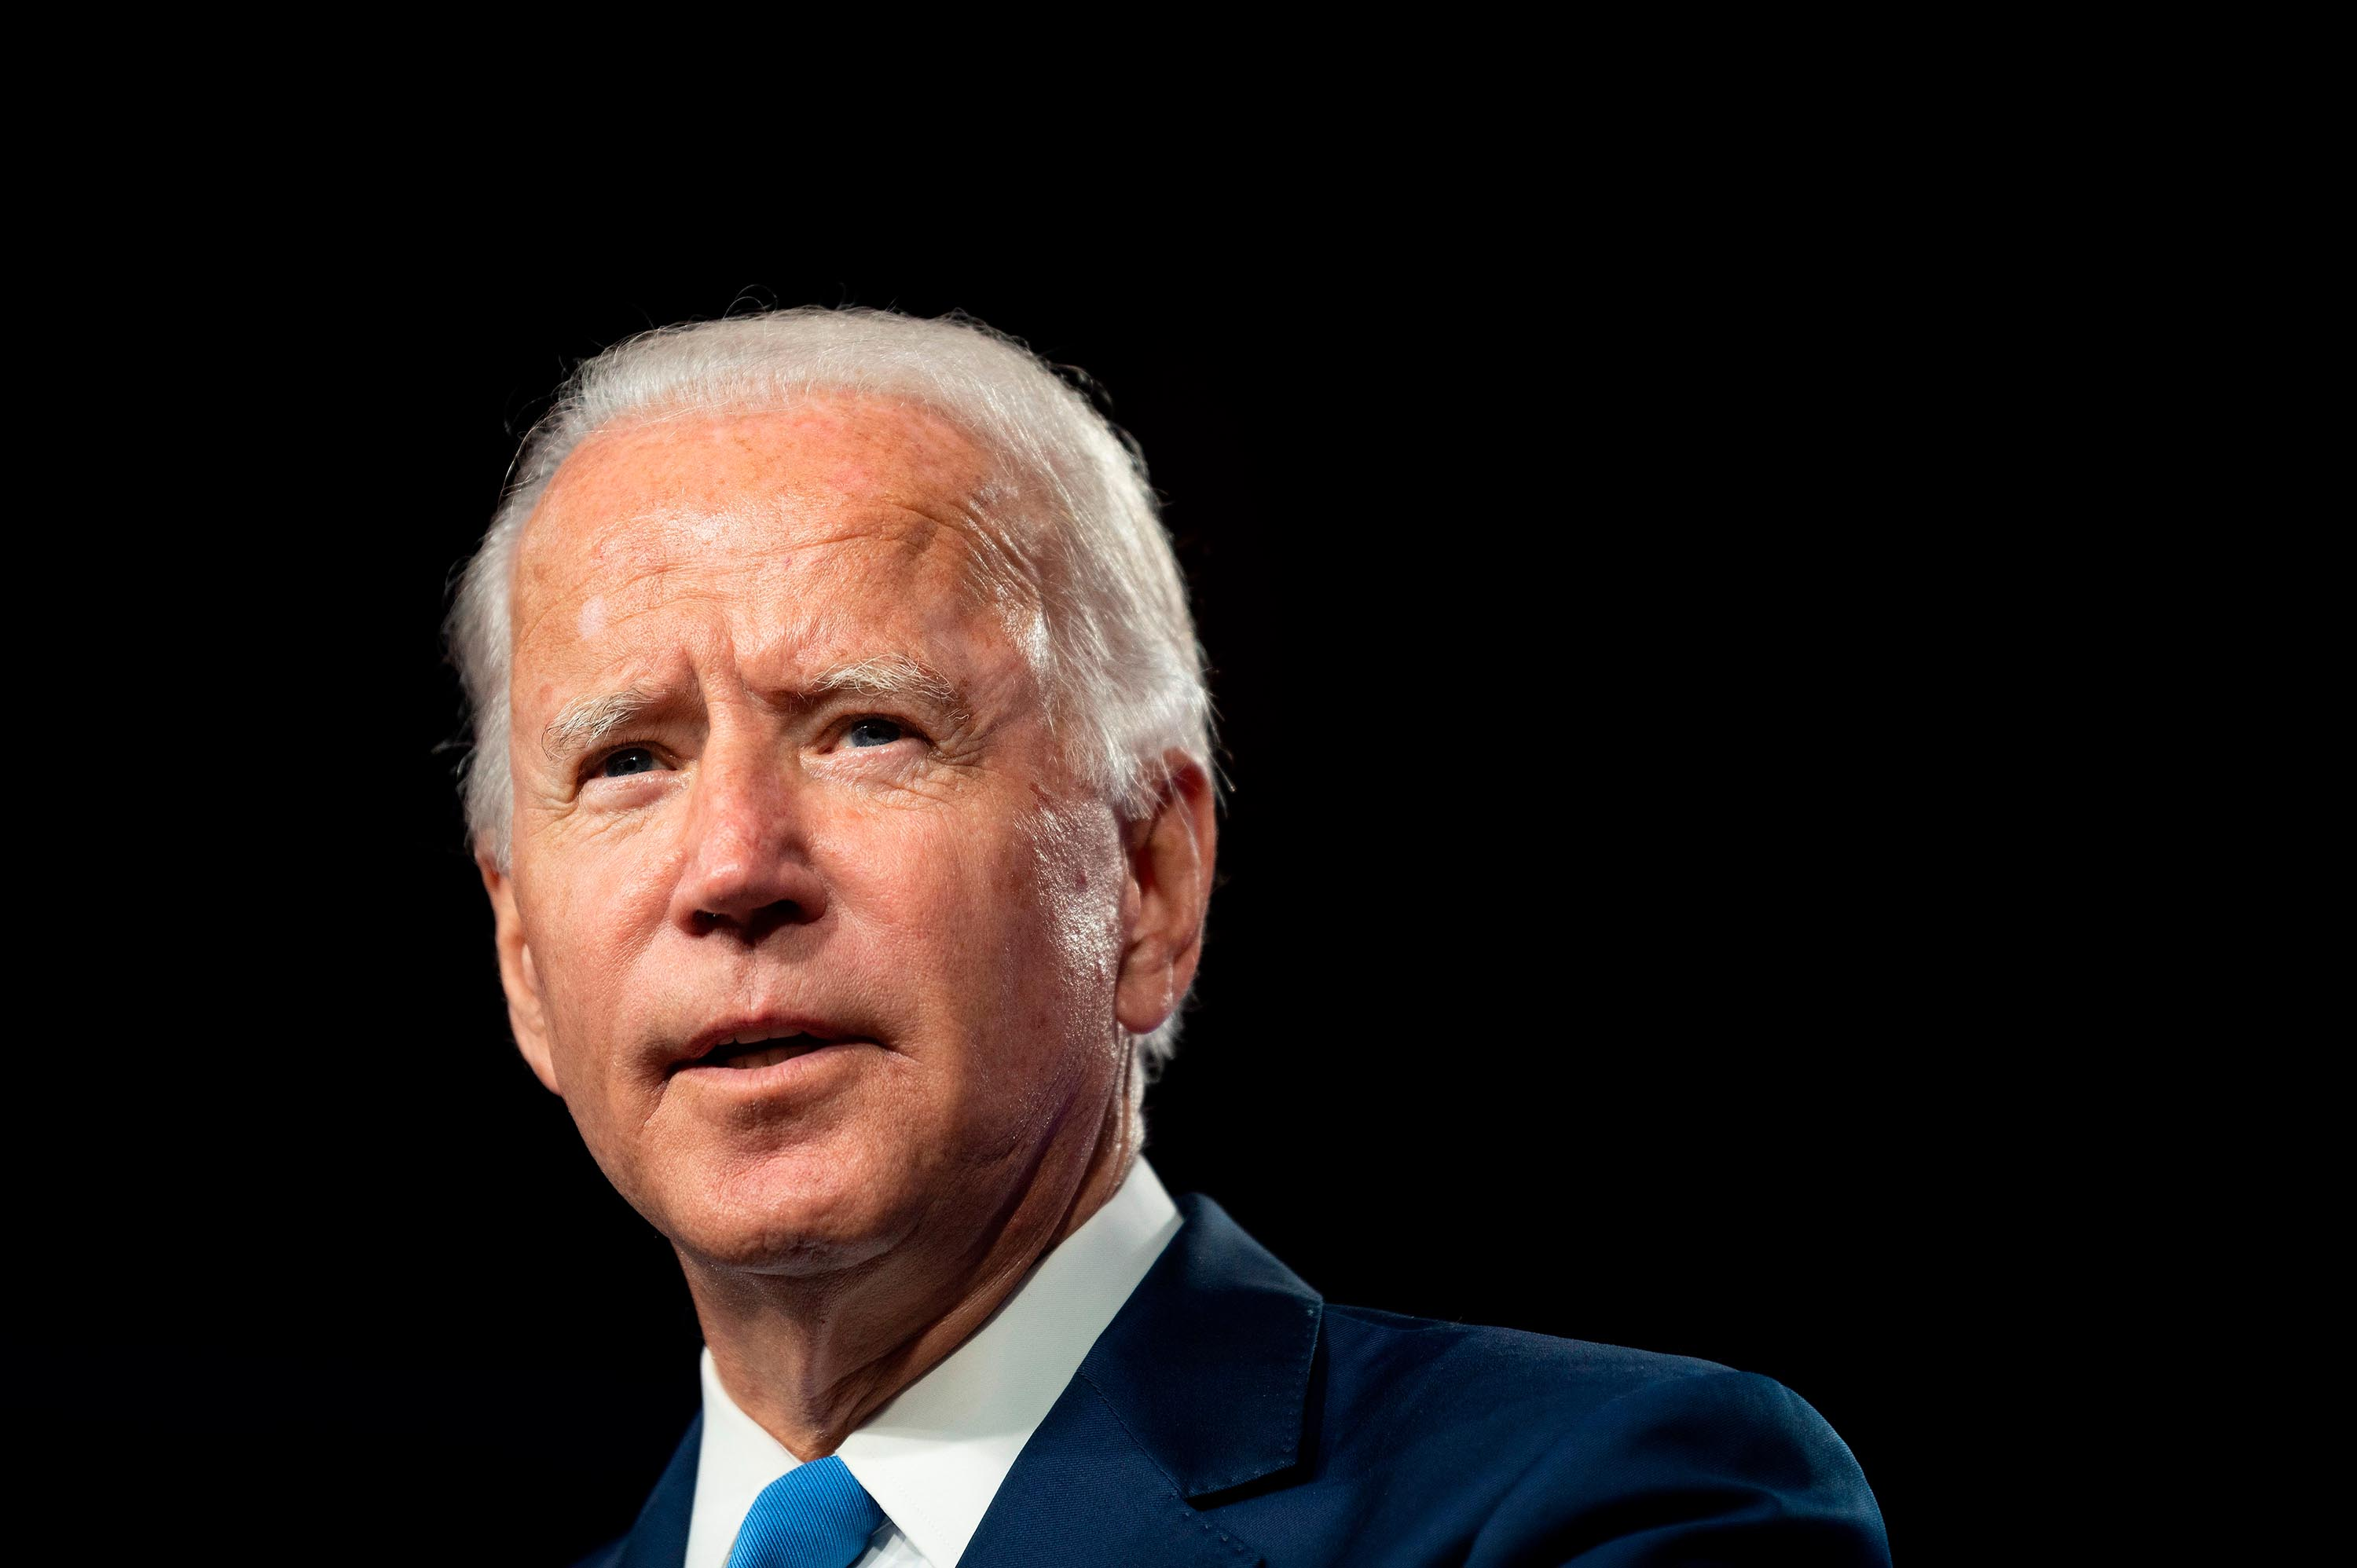 Biden proposes $1.9 trillion vaccination and economic rescue legislative package